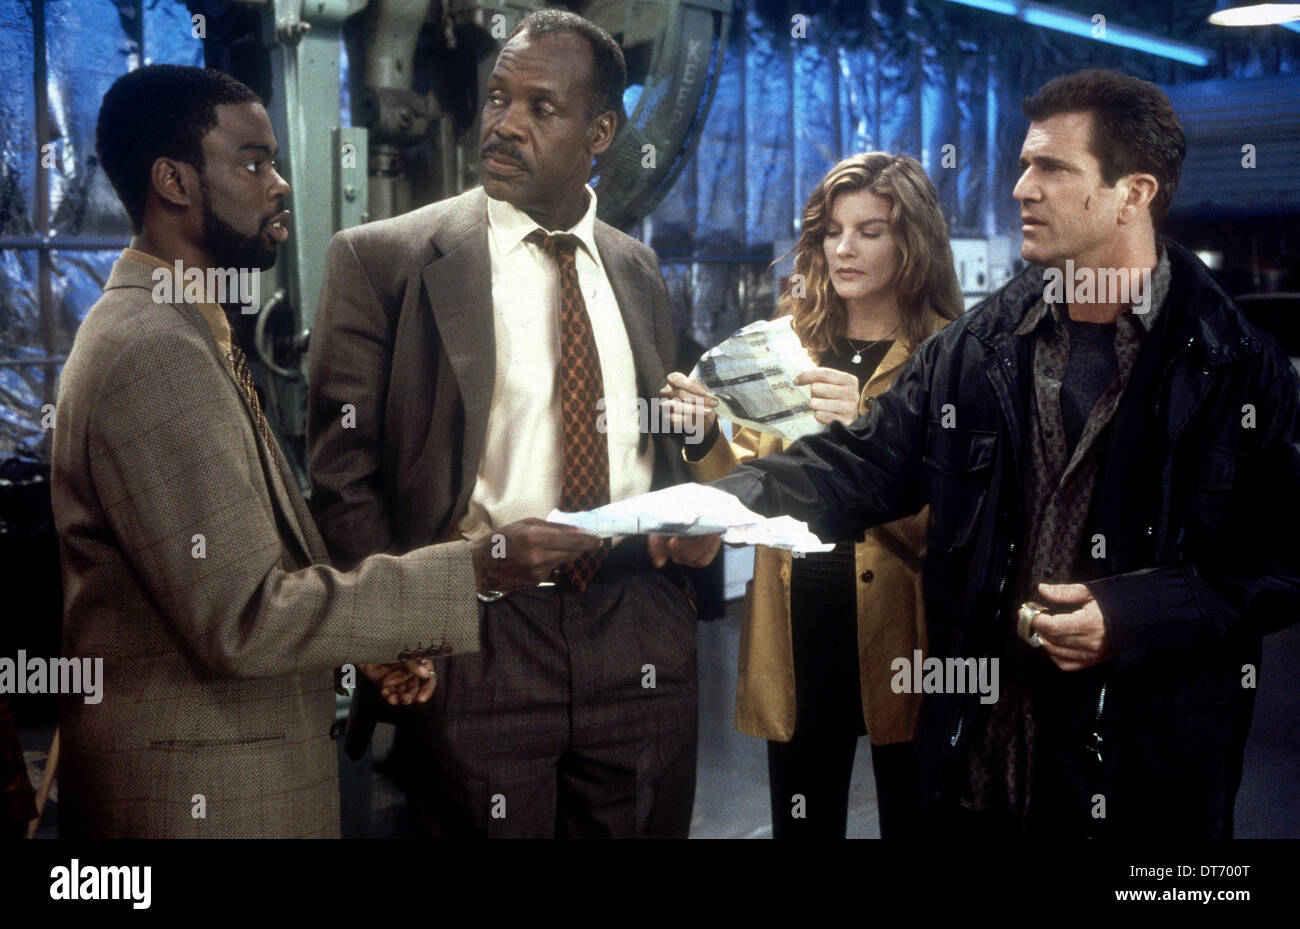 Chris Rock Danny Glover Rene Russo Mel Gibson Lethal Weapon 4 Stock Photo Alamy